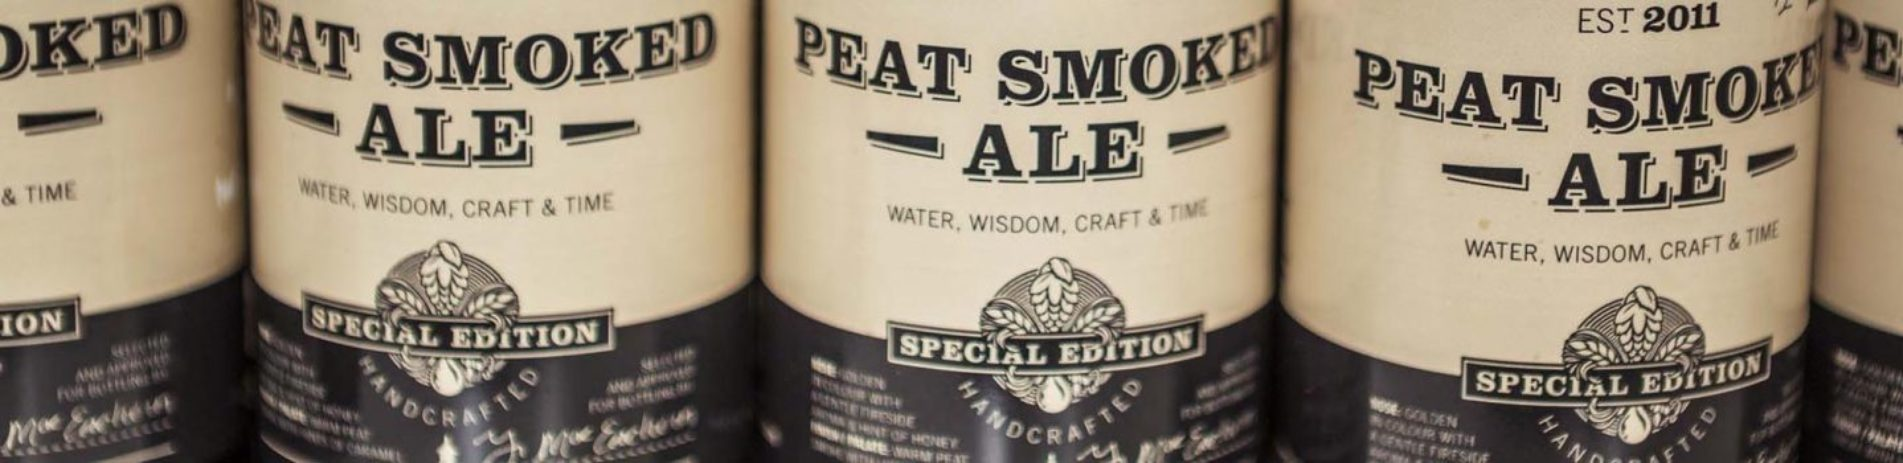 close-up-on-bottle-tags-reading-peat-smoked-ale-est-two-thousand-eleven-water-wisdom-craft-and-time